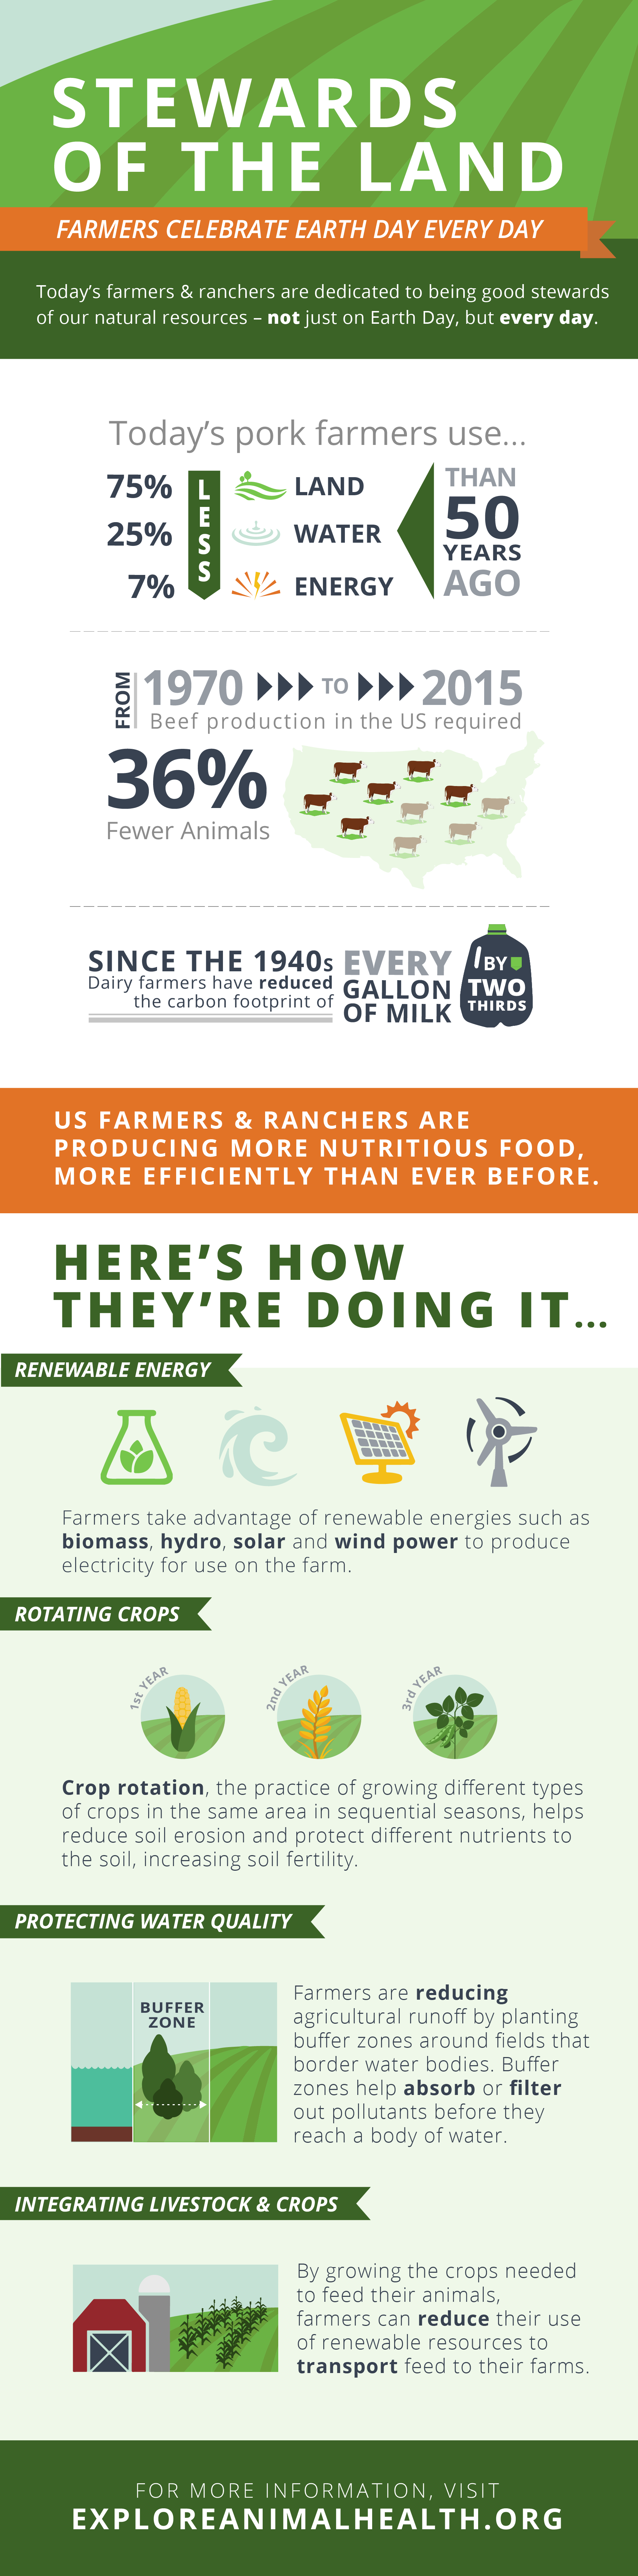 Earth-Day-Farming-Sustainability-Infographic